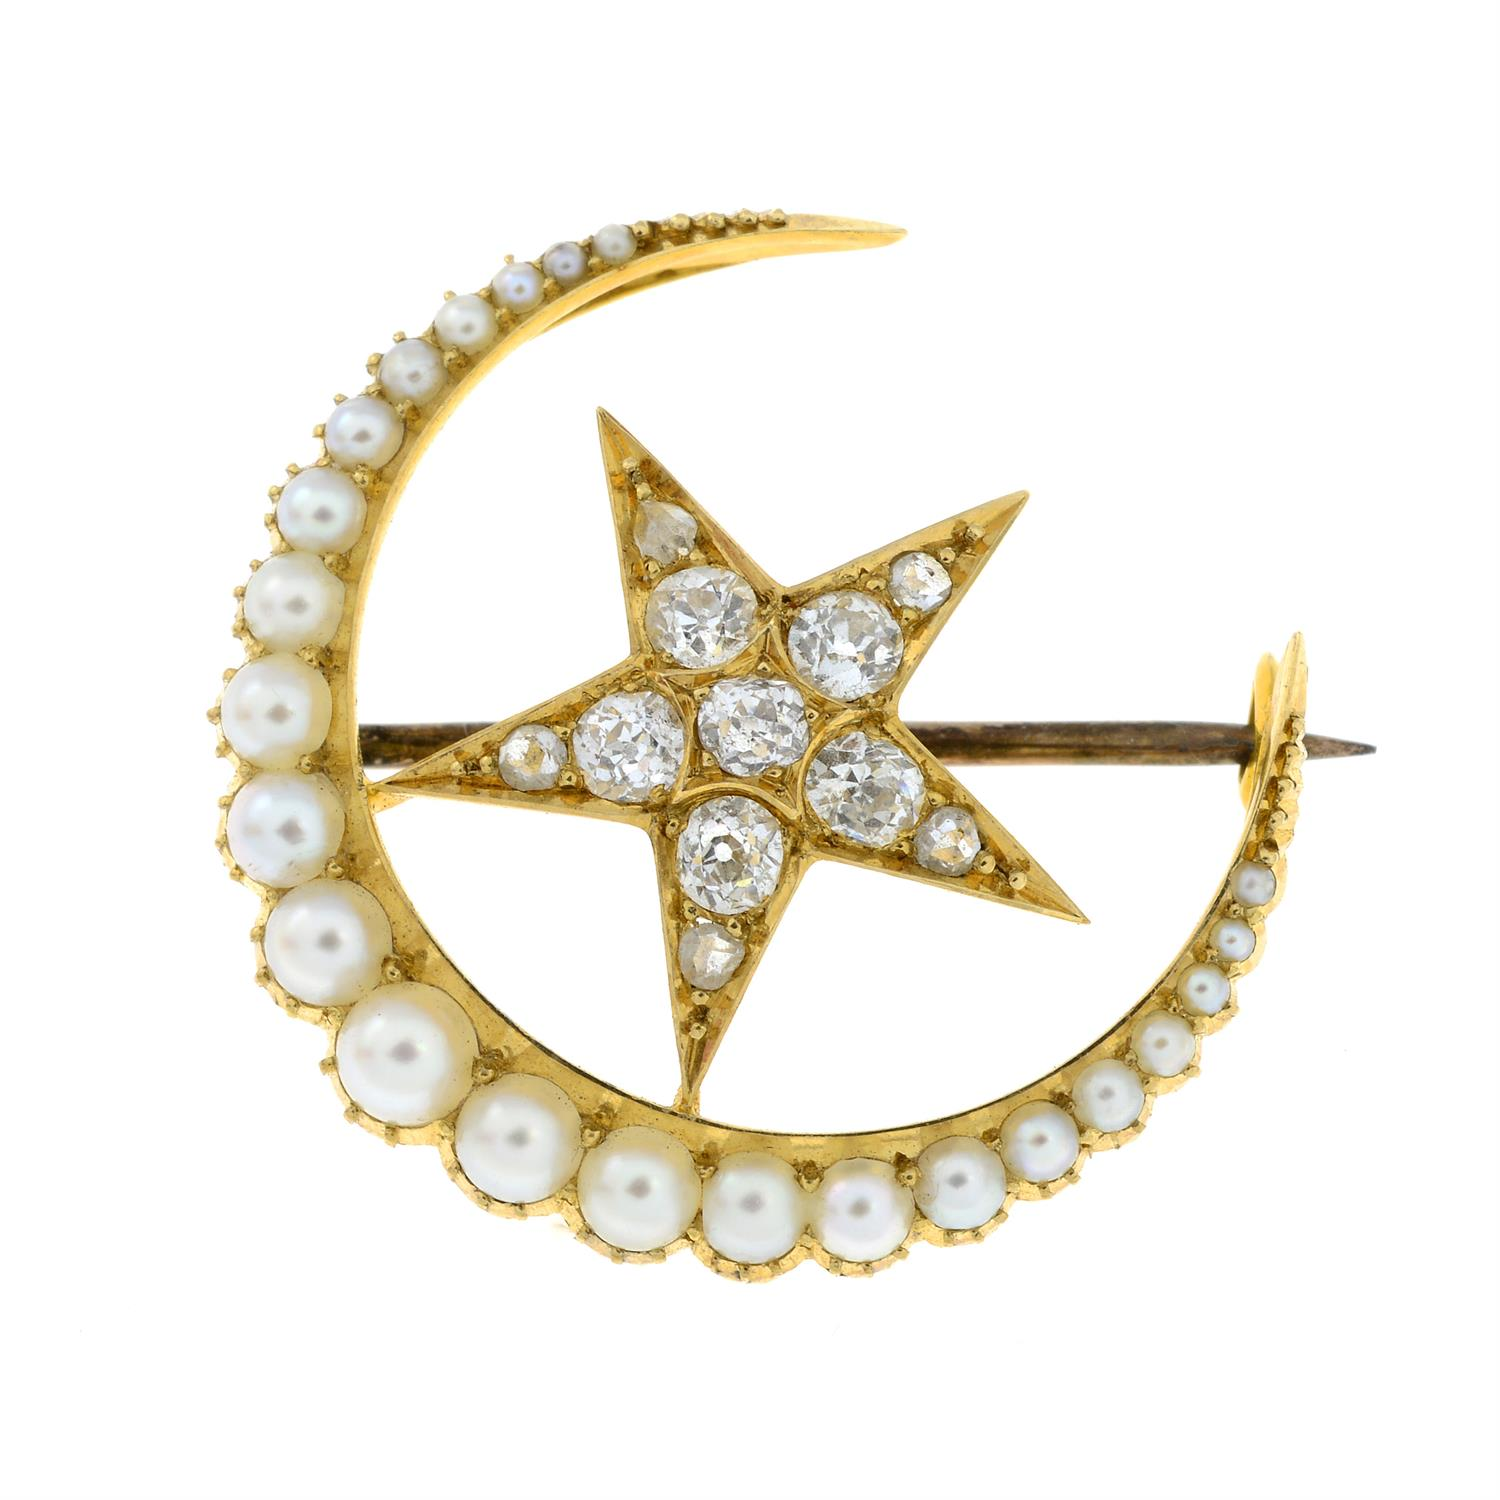 A late Victorian 15ct gold split pearl and old-cut diamond crescent moon and star brooch. - Image 2 of 5